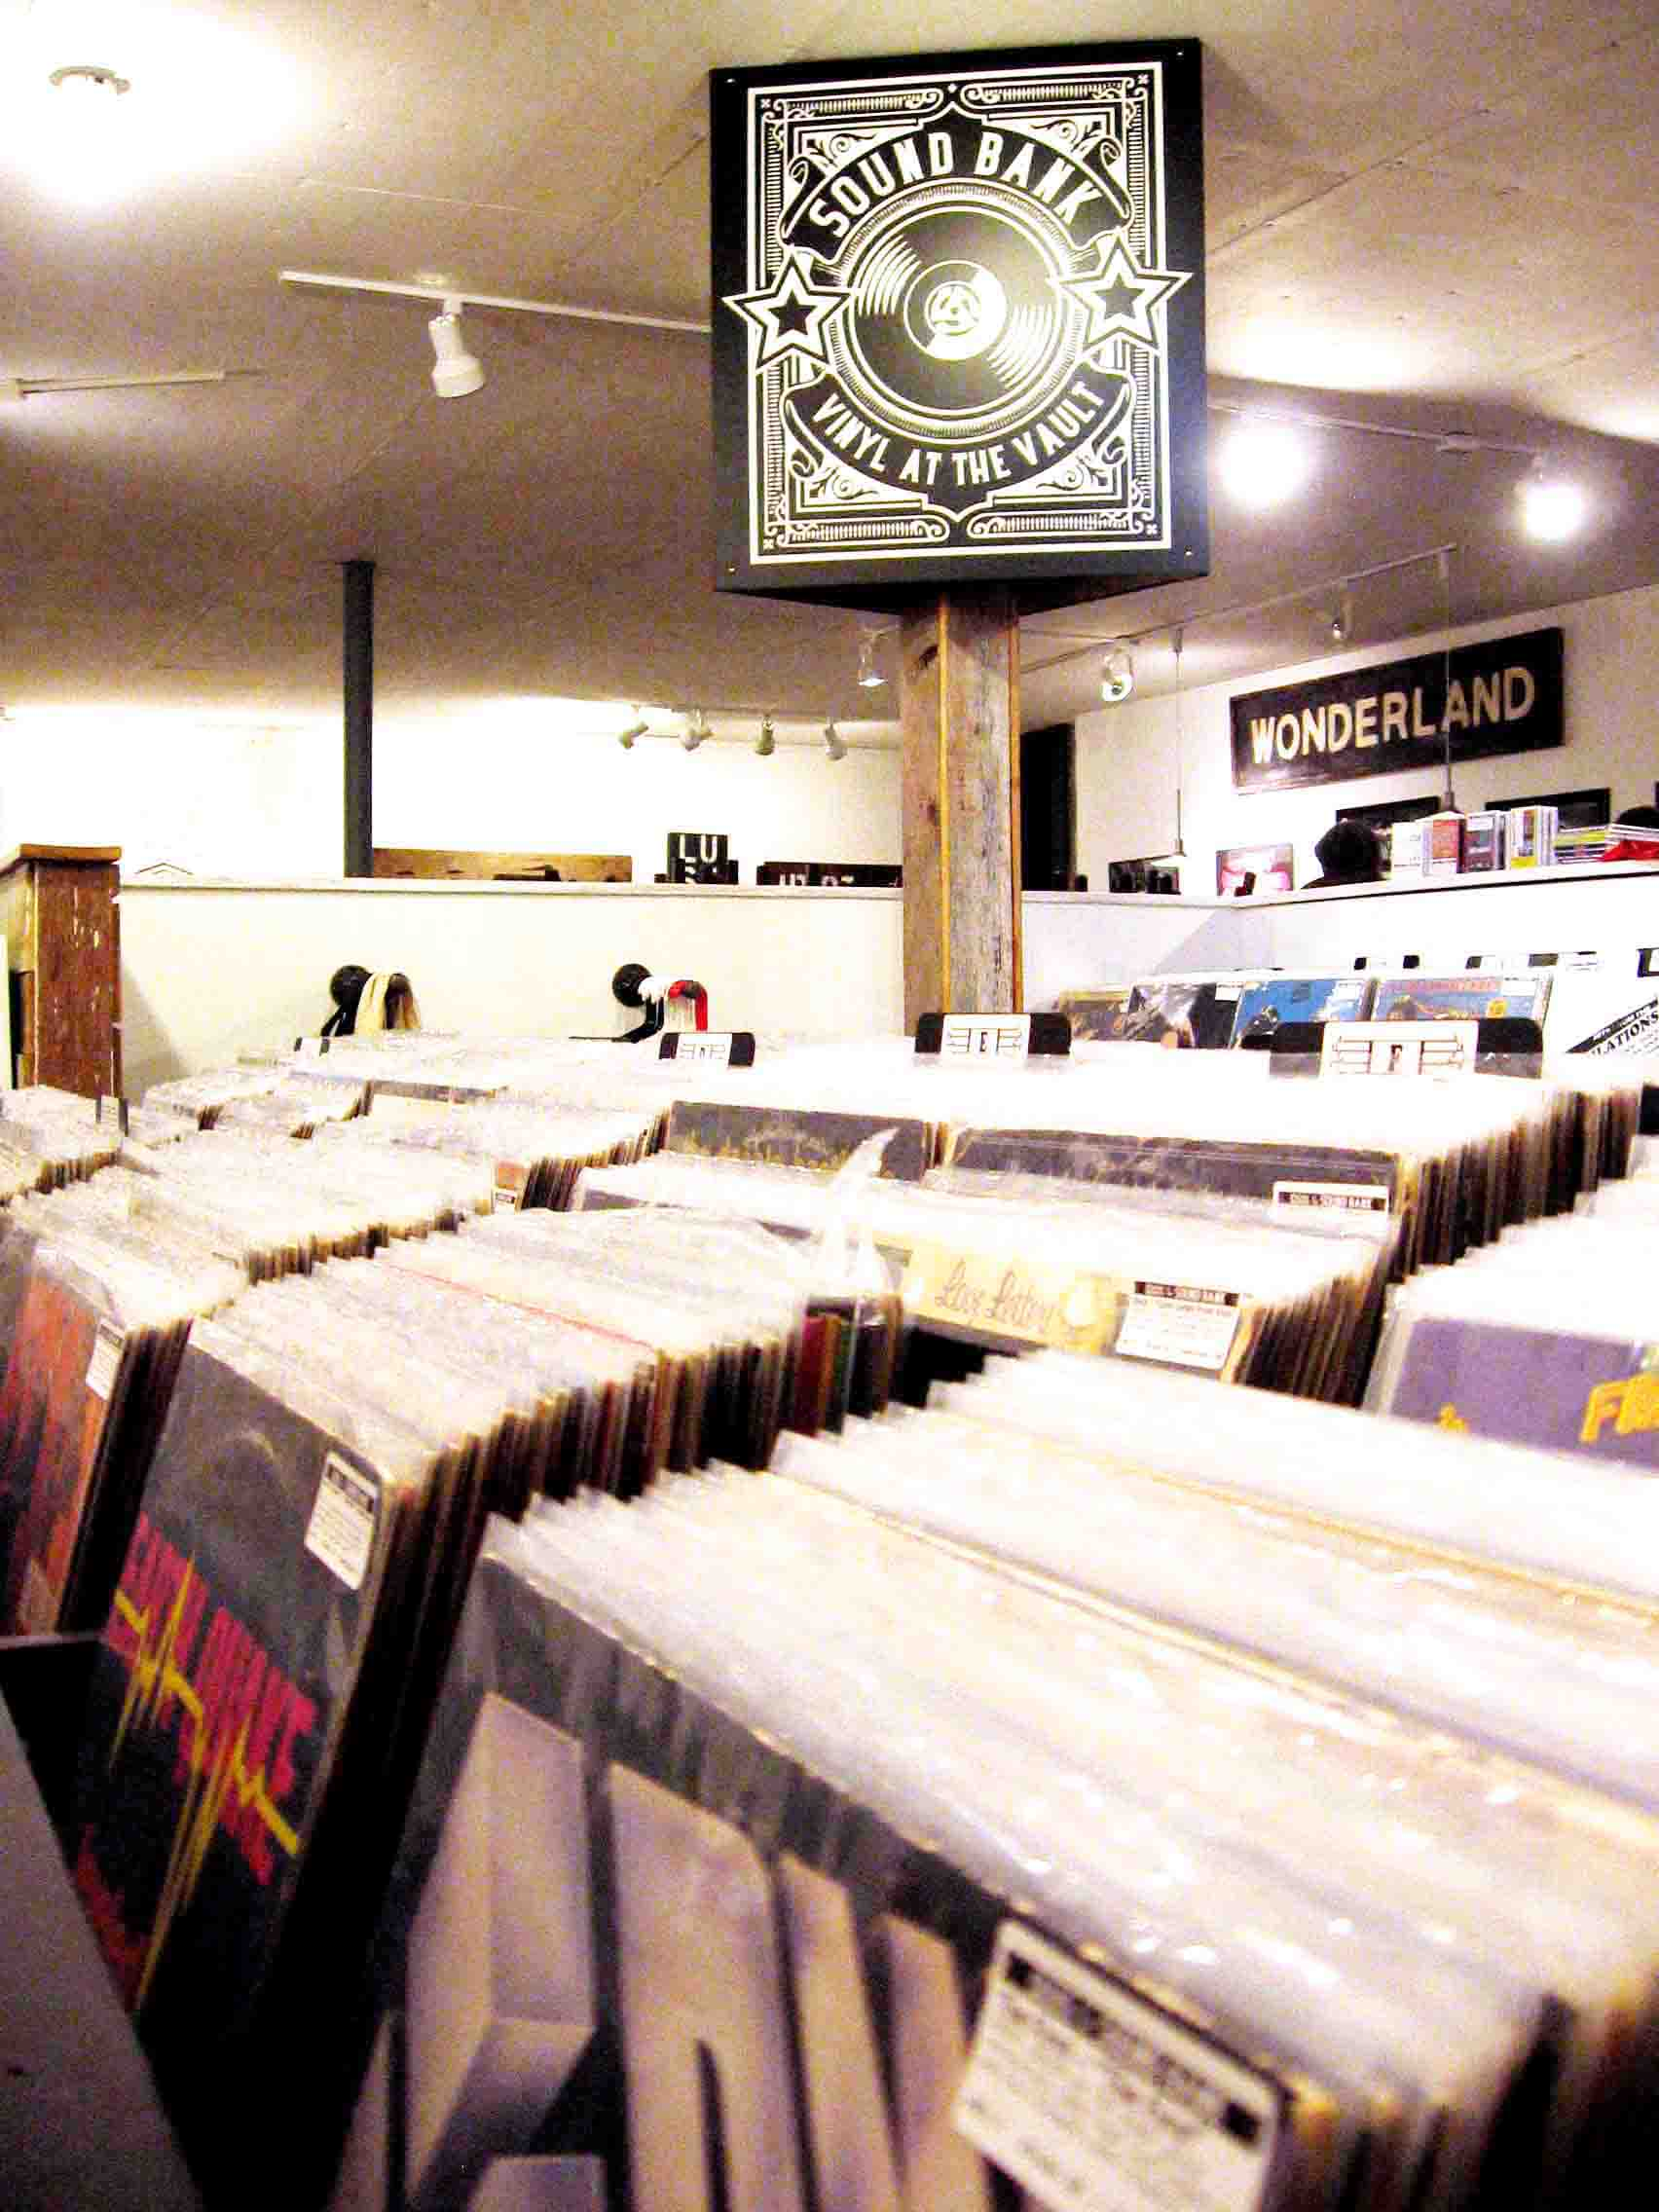 Subbmiited | The Daily Eastern News The Sound Bank is a vinyl-only store owned by the founders of Cavetone Records. It is located on the second floor of the Vault Art Collective building in Tuscola.